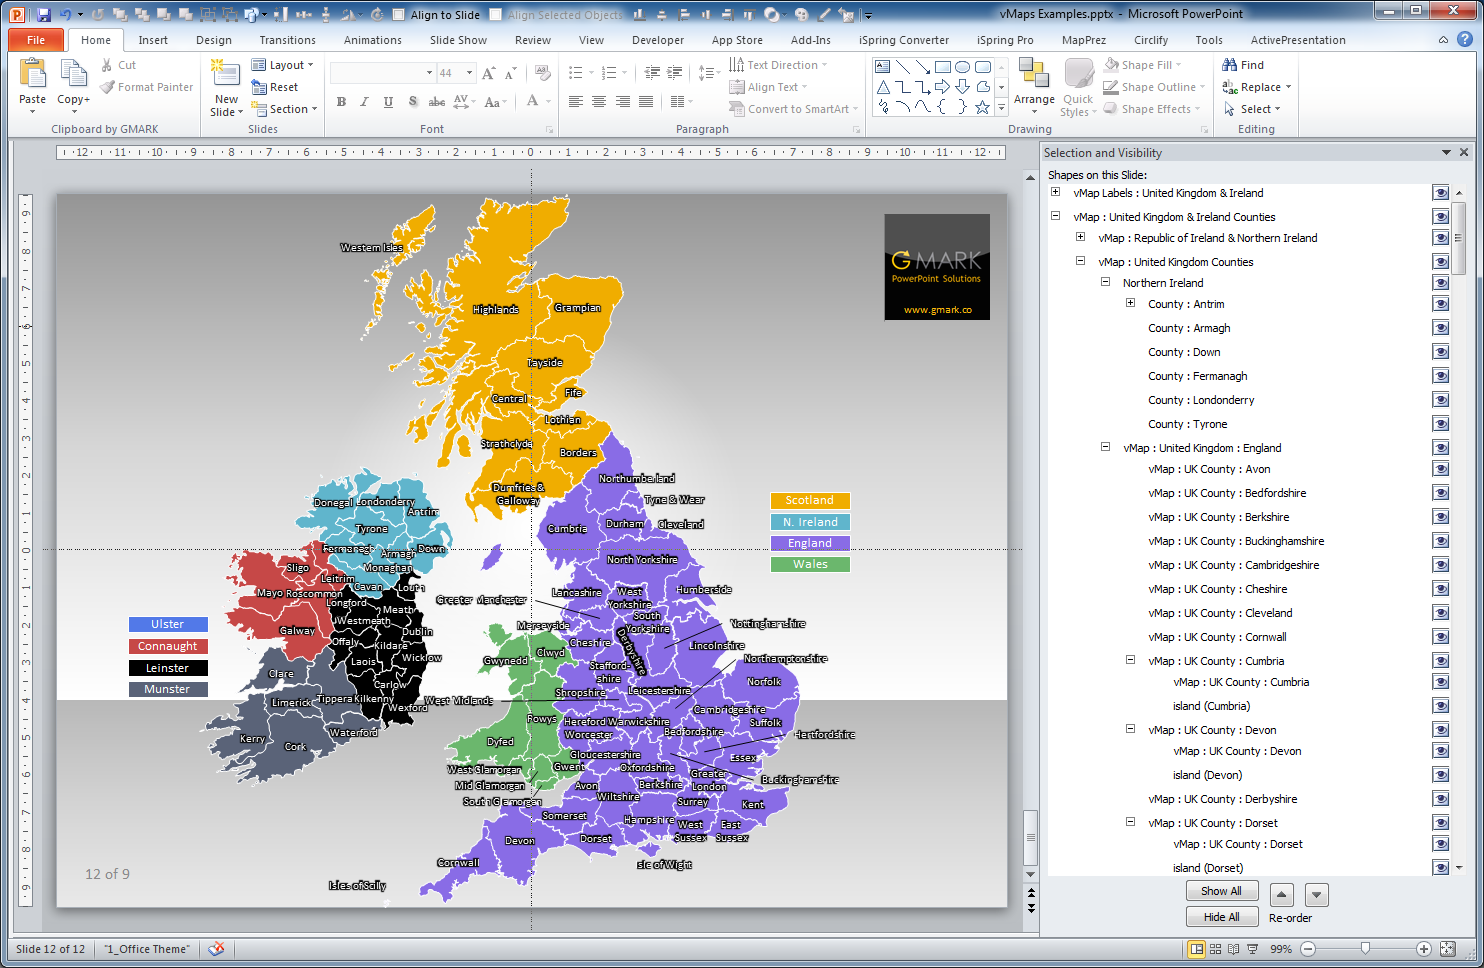 easily find and select the counties regions using the powerpoint selection pane